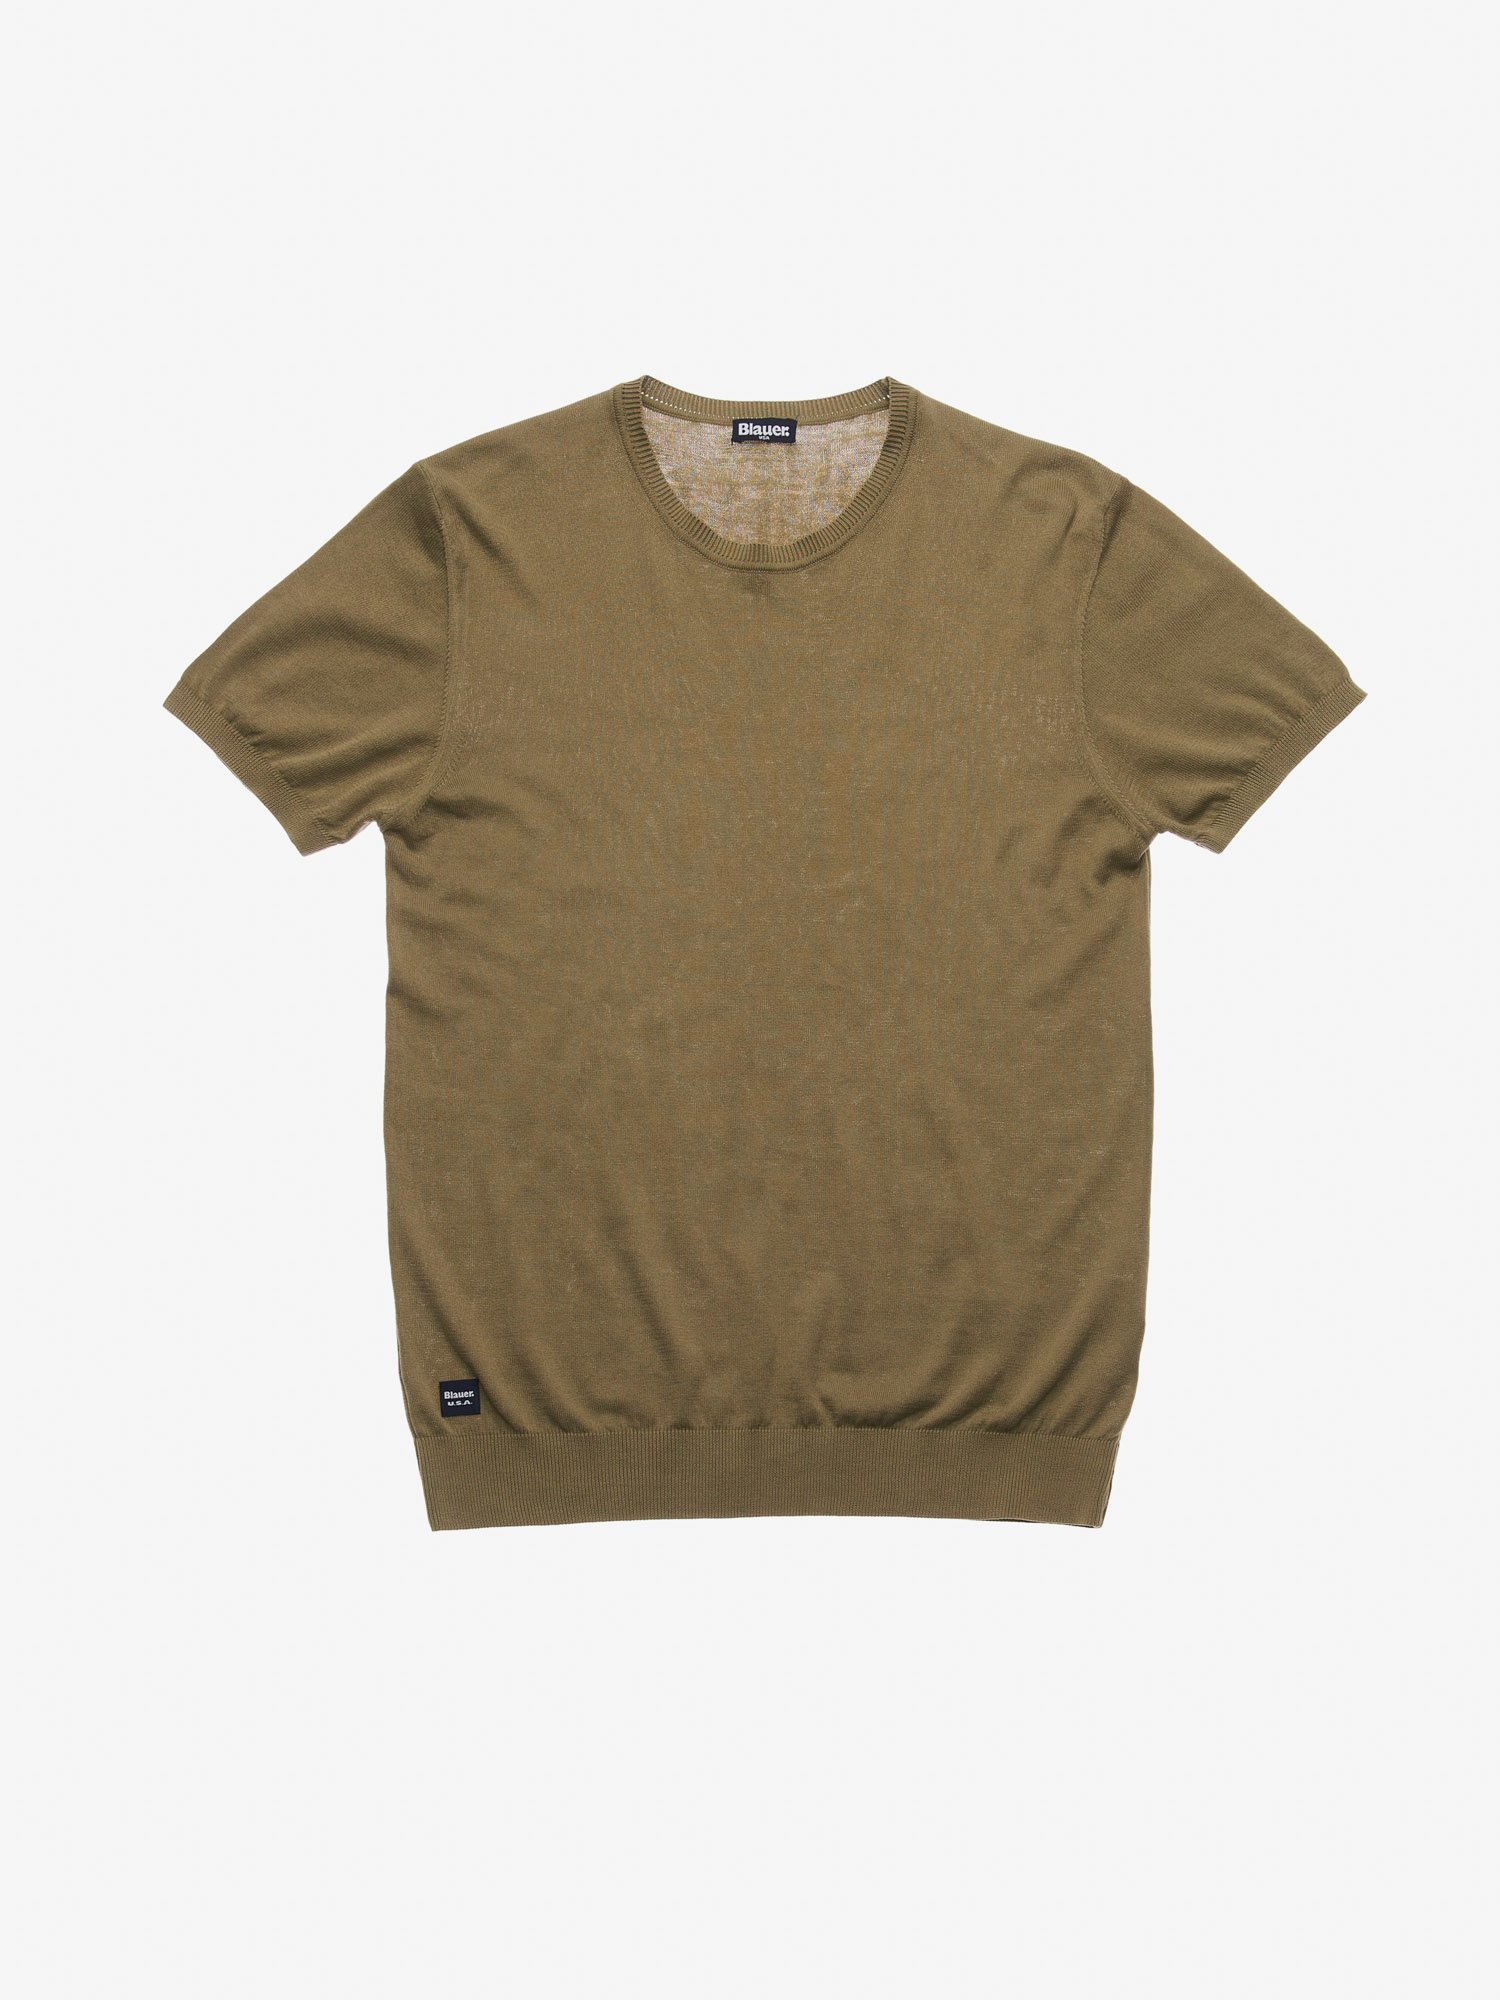 SHORT SLEEVE CREW NECK SWEATER - Blauer